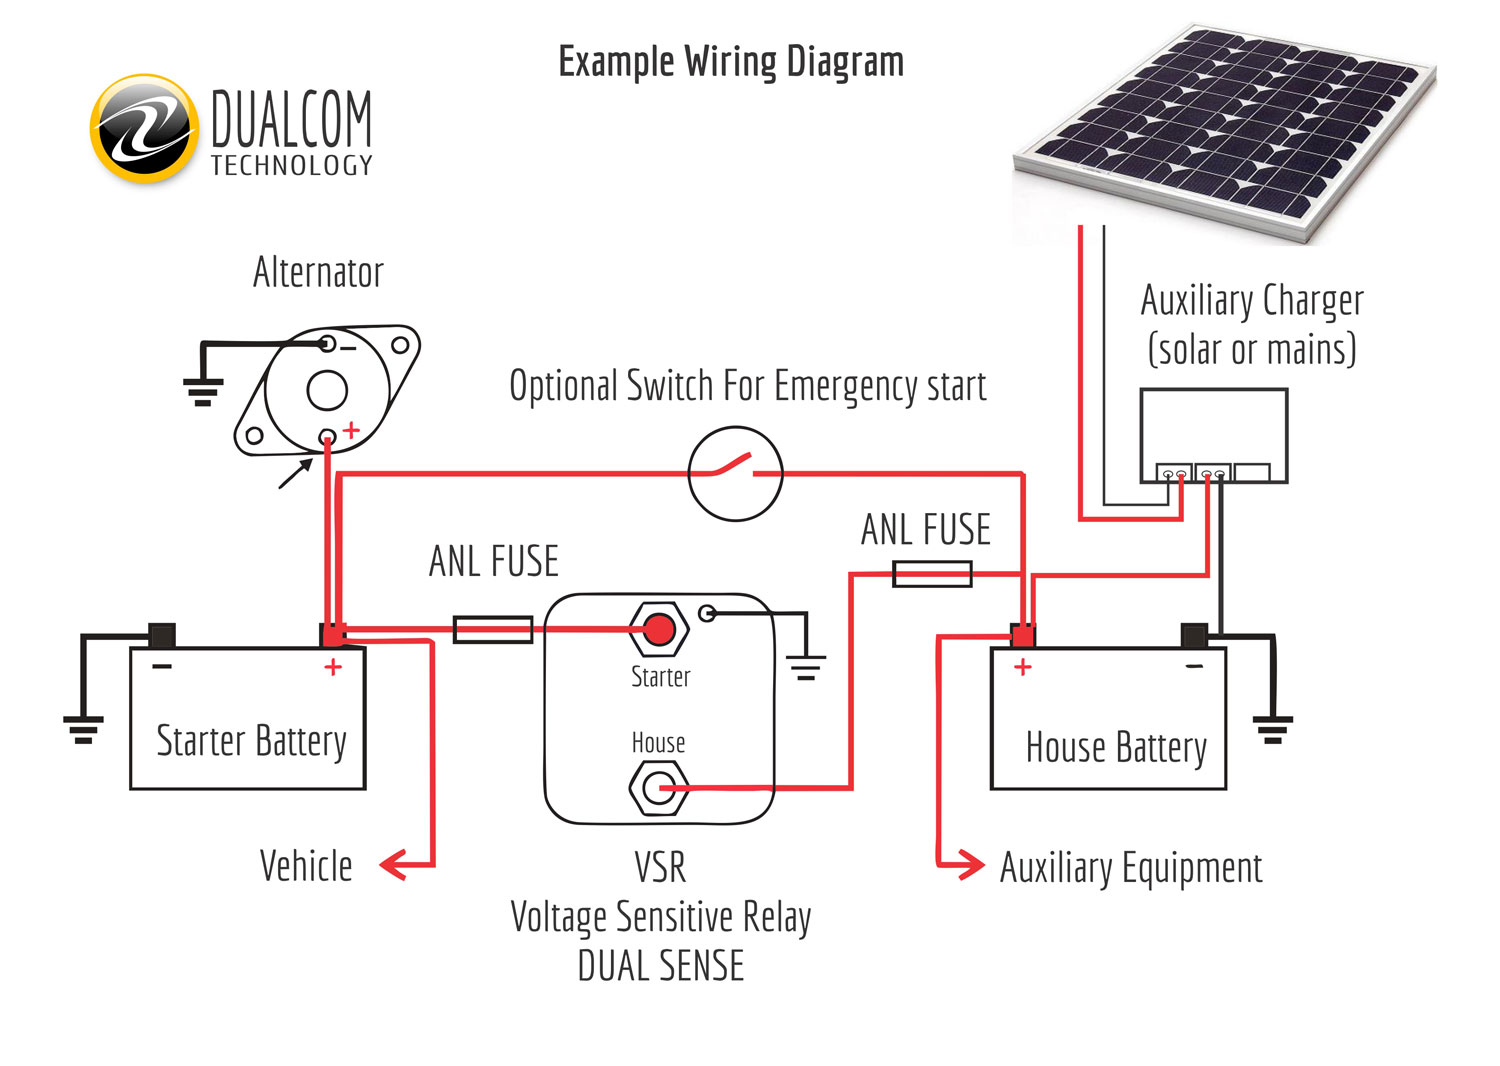 How A Vsr Voltage Sensitive Relay Works Energy Unlimited Wiring Solar Panels In Parallel Diagram The Blog